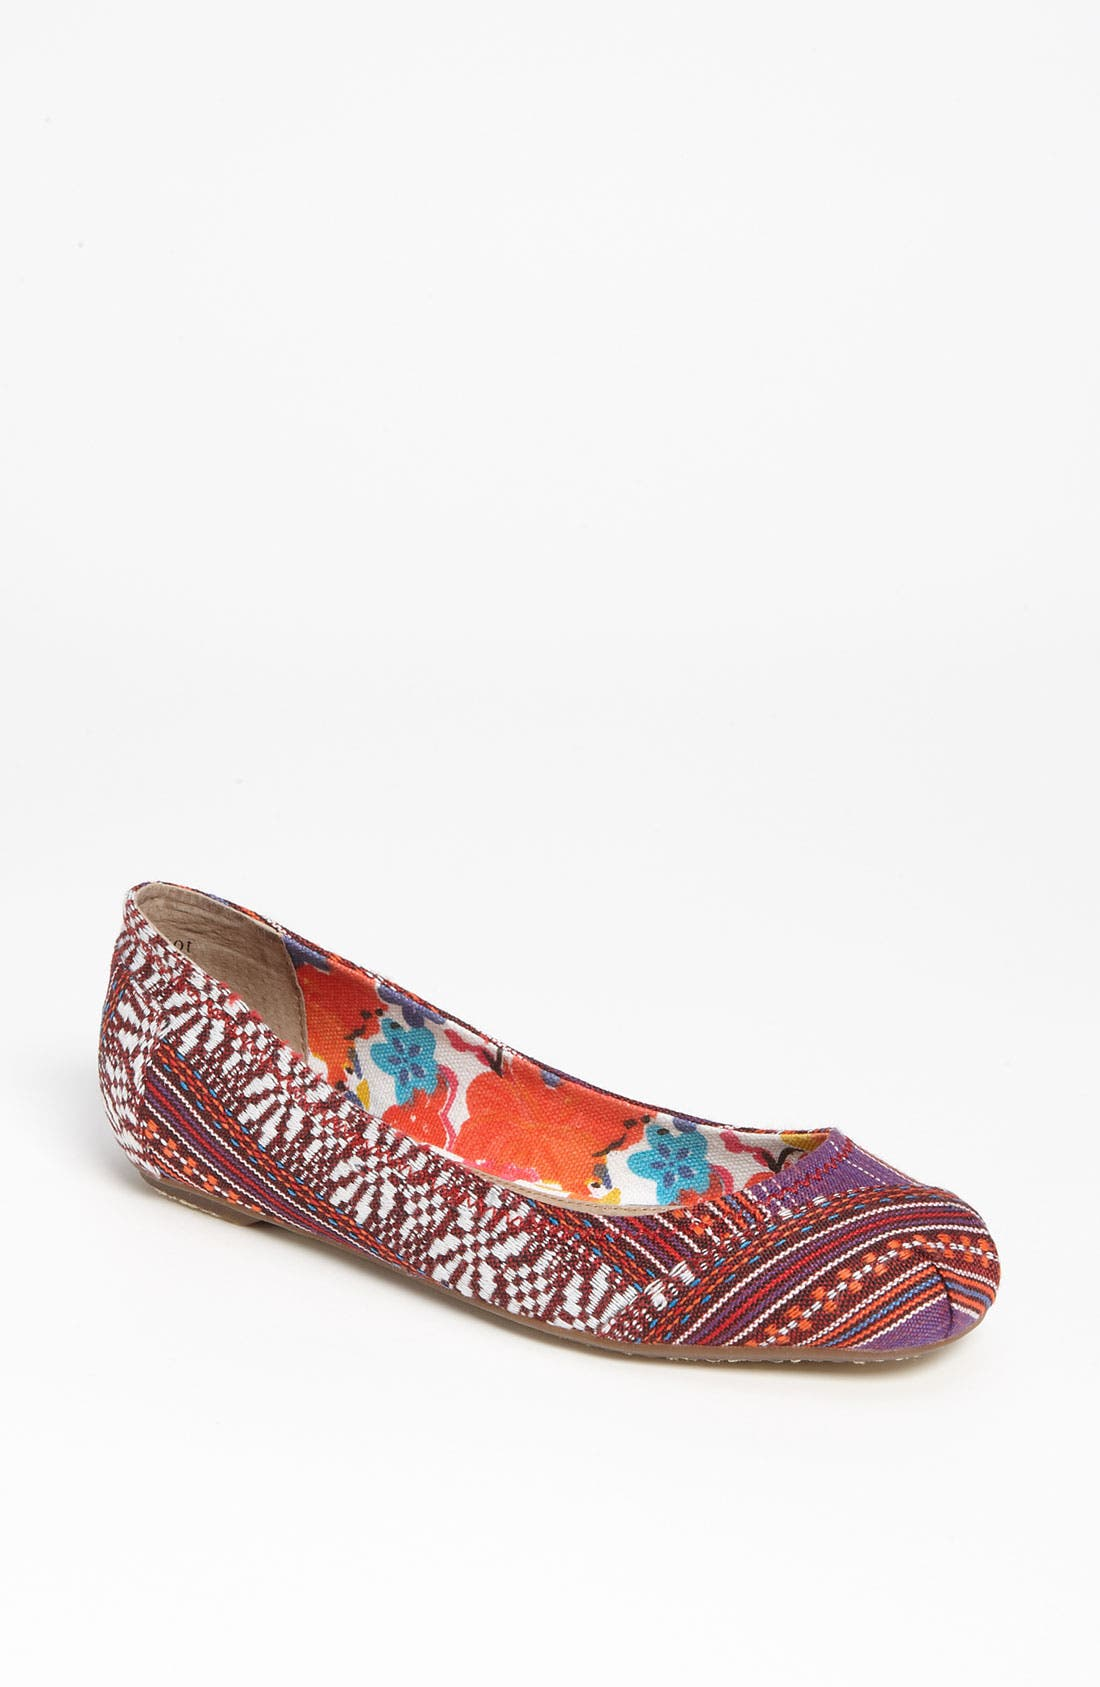 Alternate Image 1 Selected - TOMS 'Lina' Ballet Flat